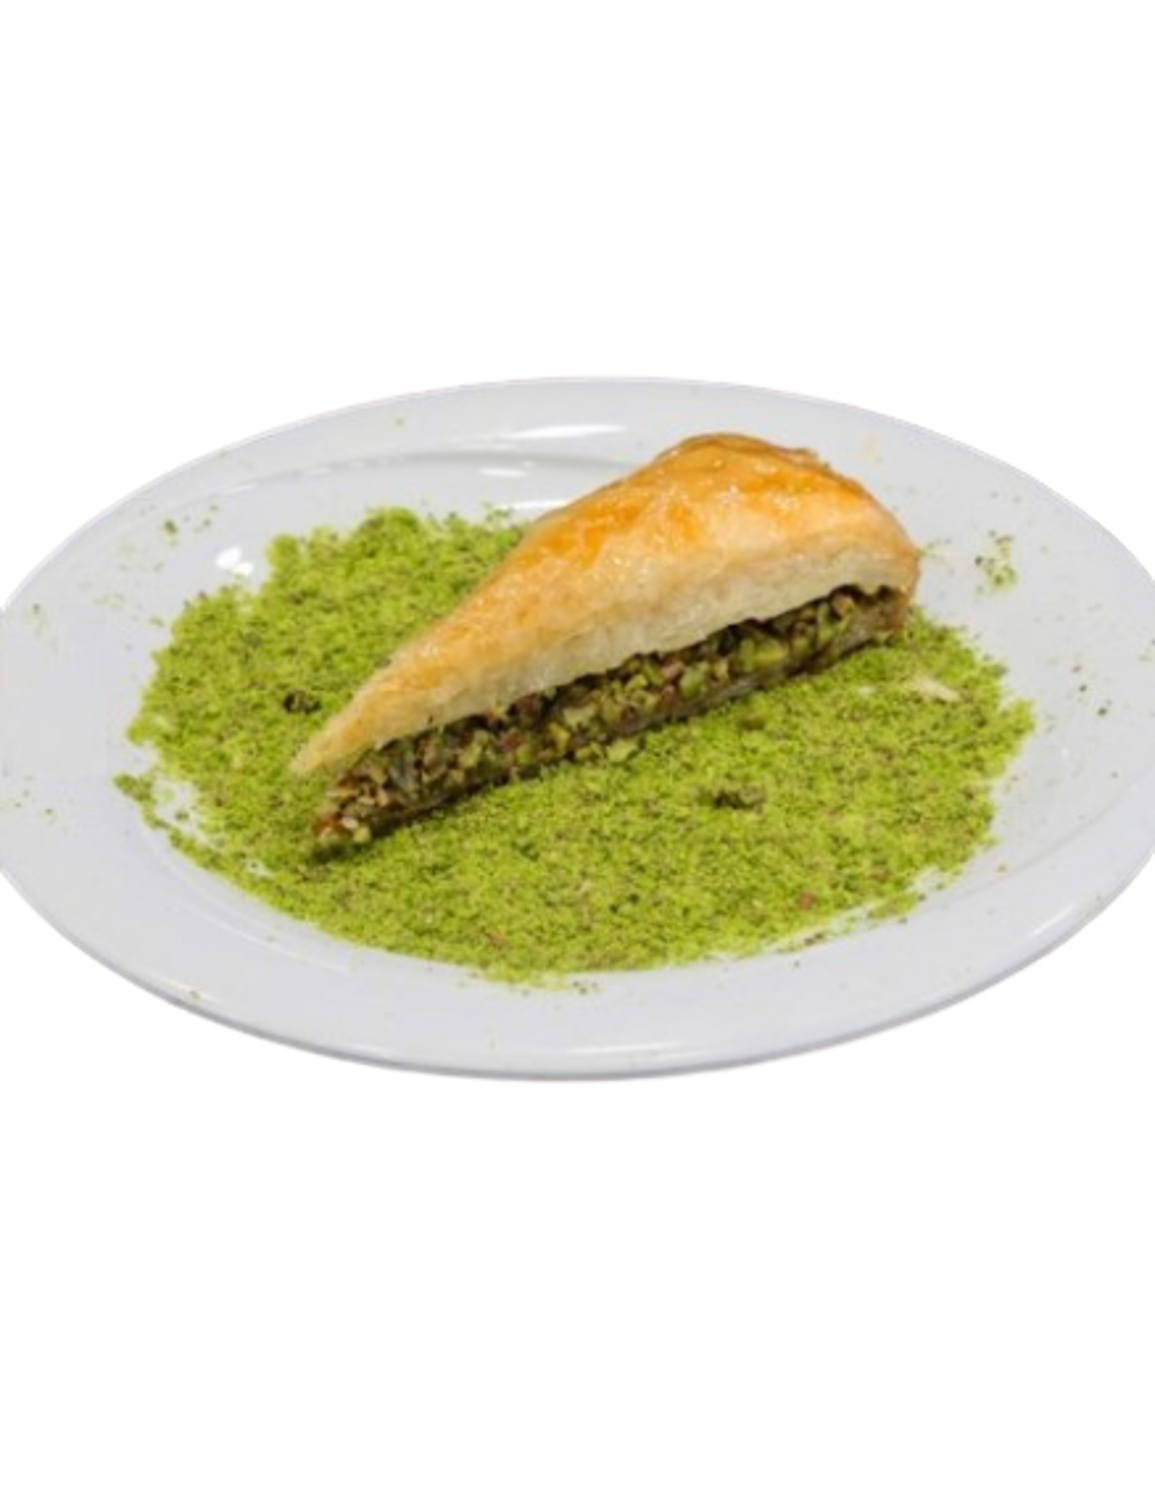 Picture of MEVLANA BAKLAVA HAVUC DILIM ( CARROT SLICE )